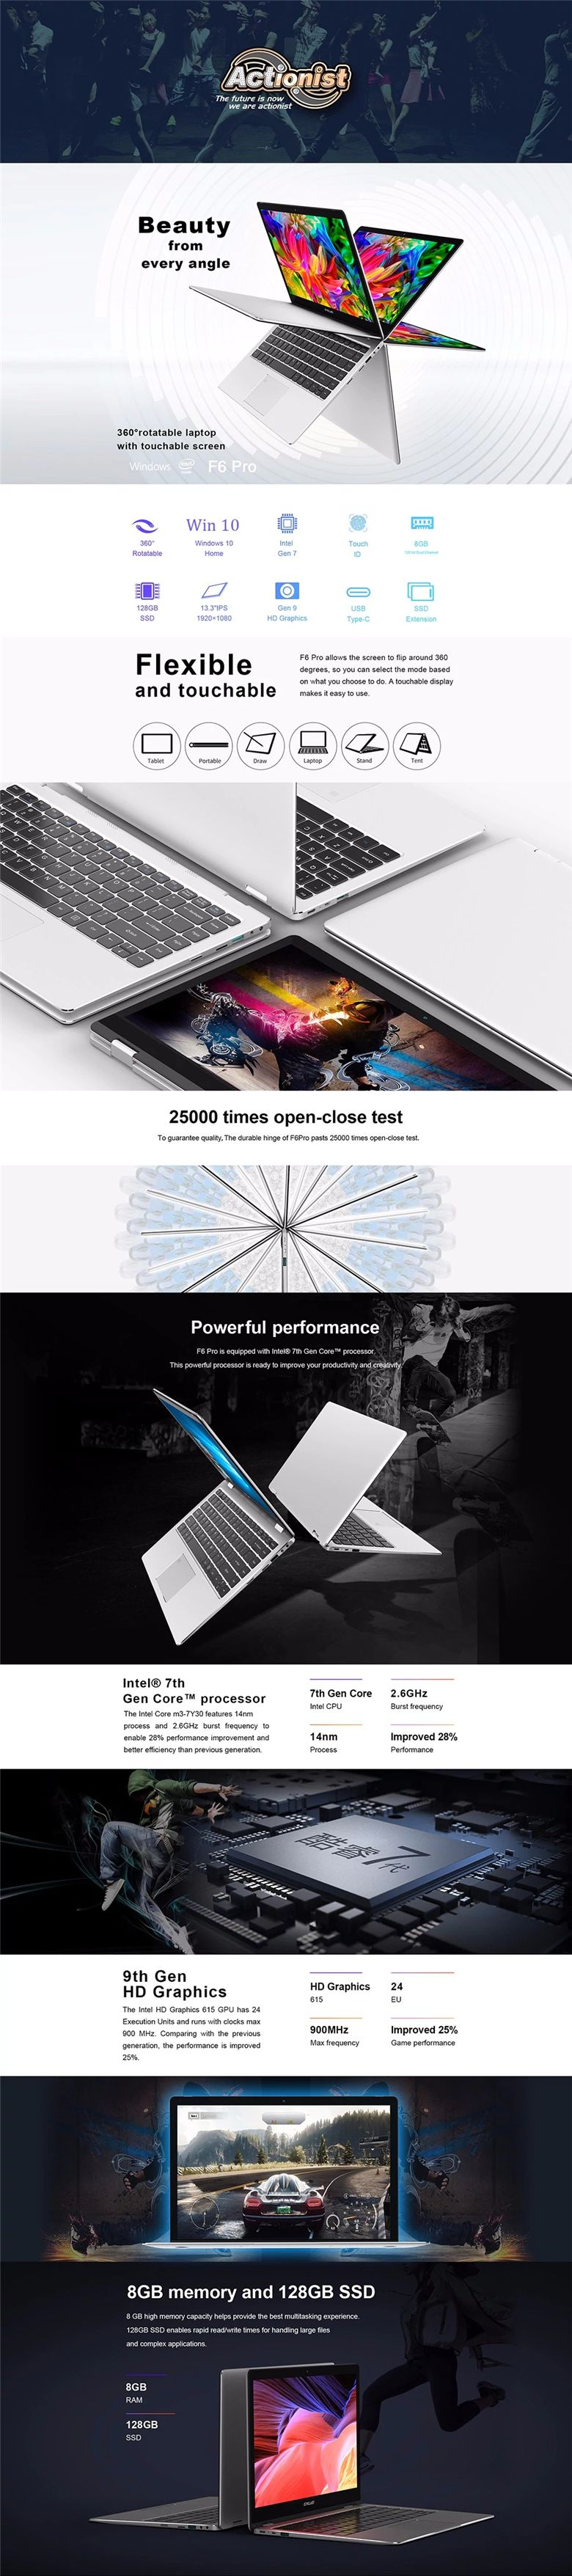 Teclast F6 Pro Notebook 13.3 inch 360 Degree Touch Screen Intel Core m3-7Y30 8GB/128GB SSD Fingerprint Recognition Silver Laptops & Netbooks from ...